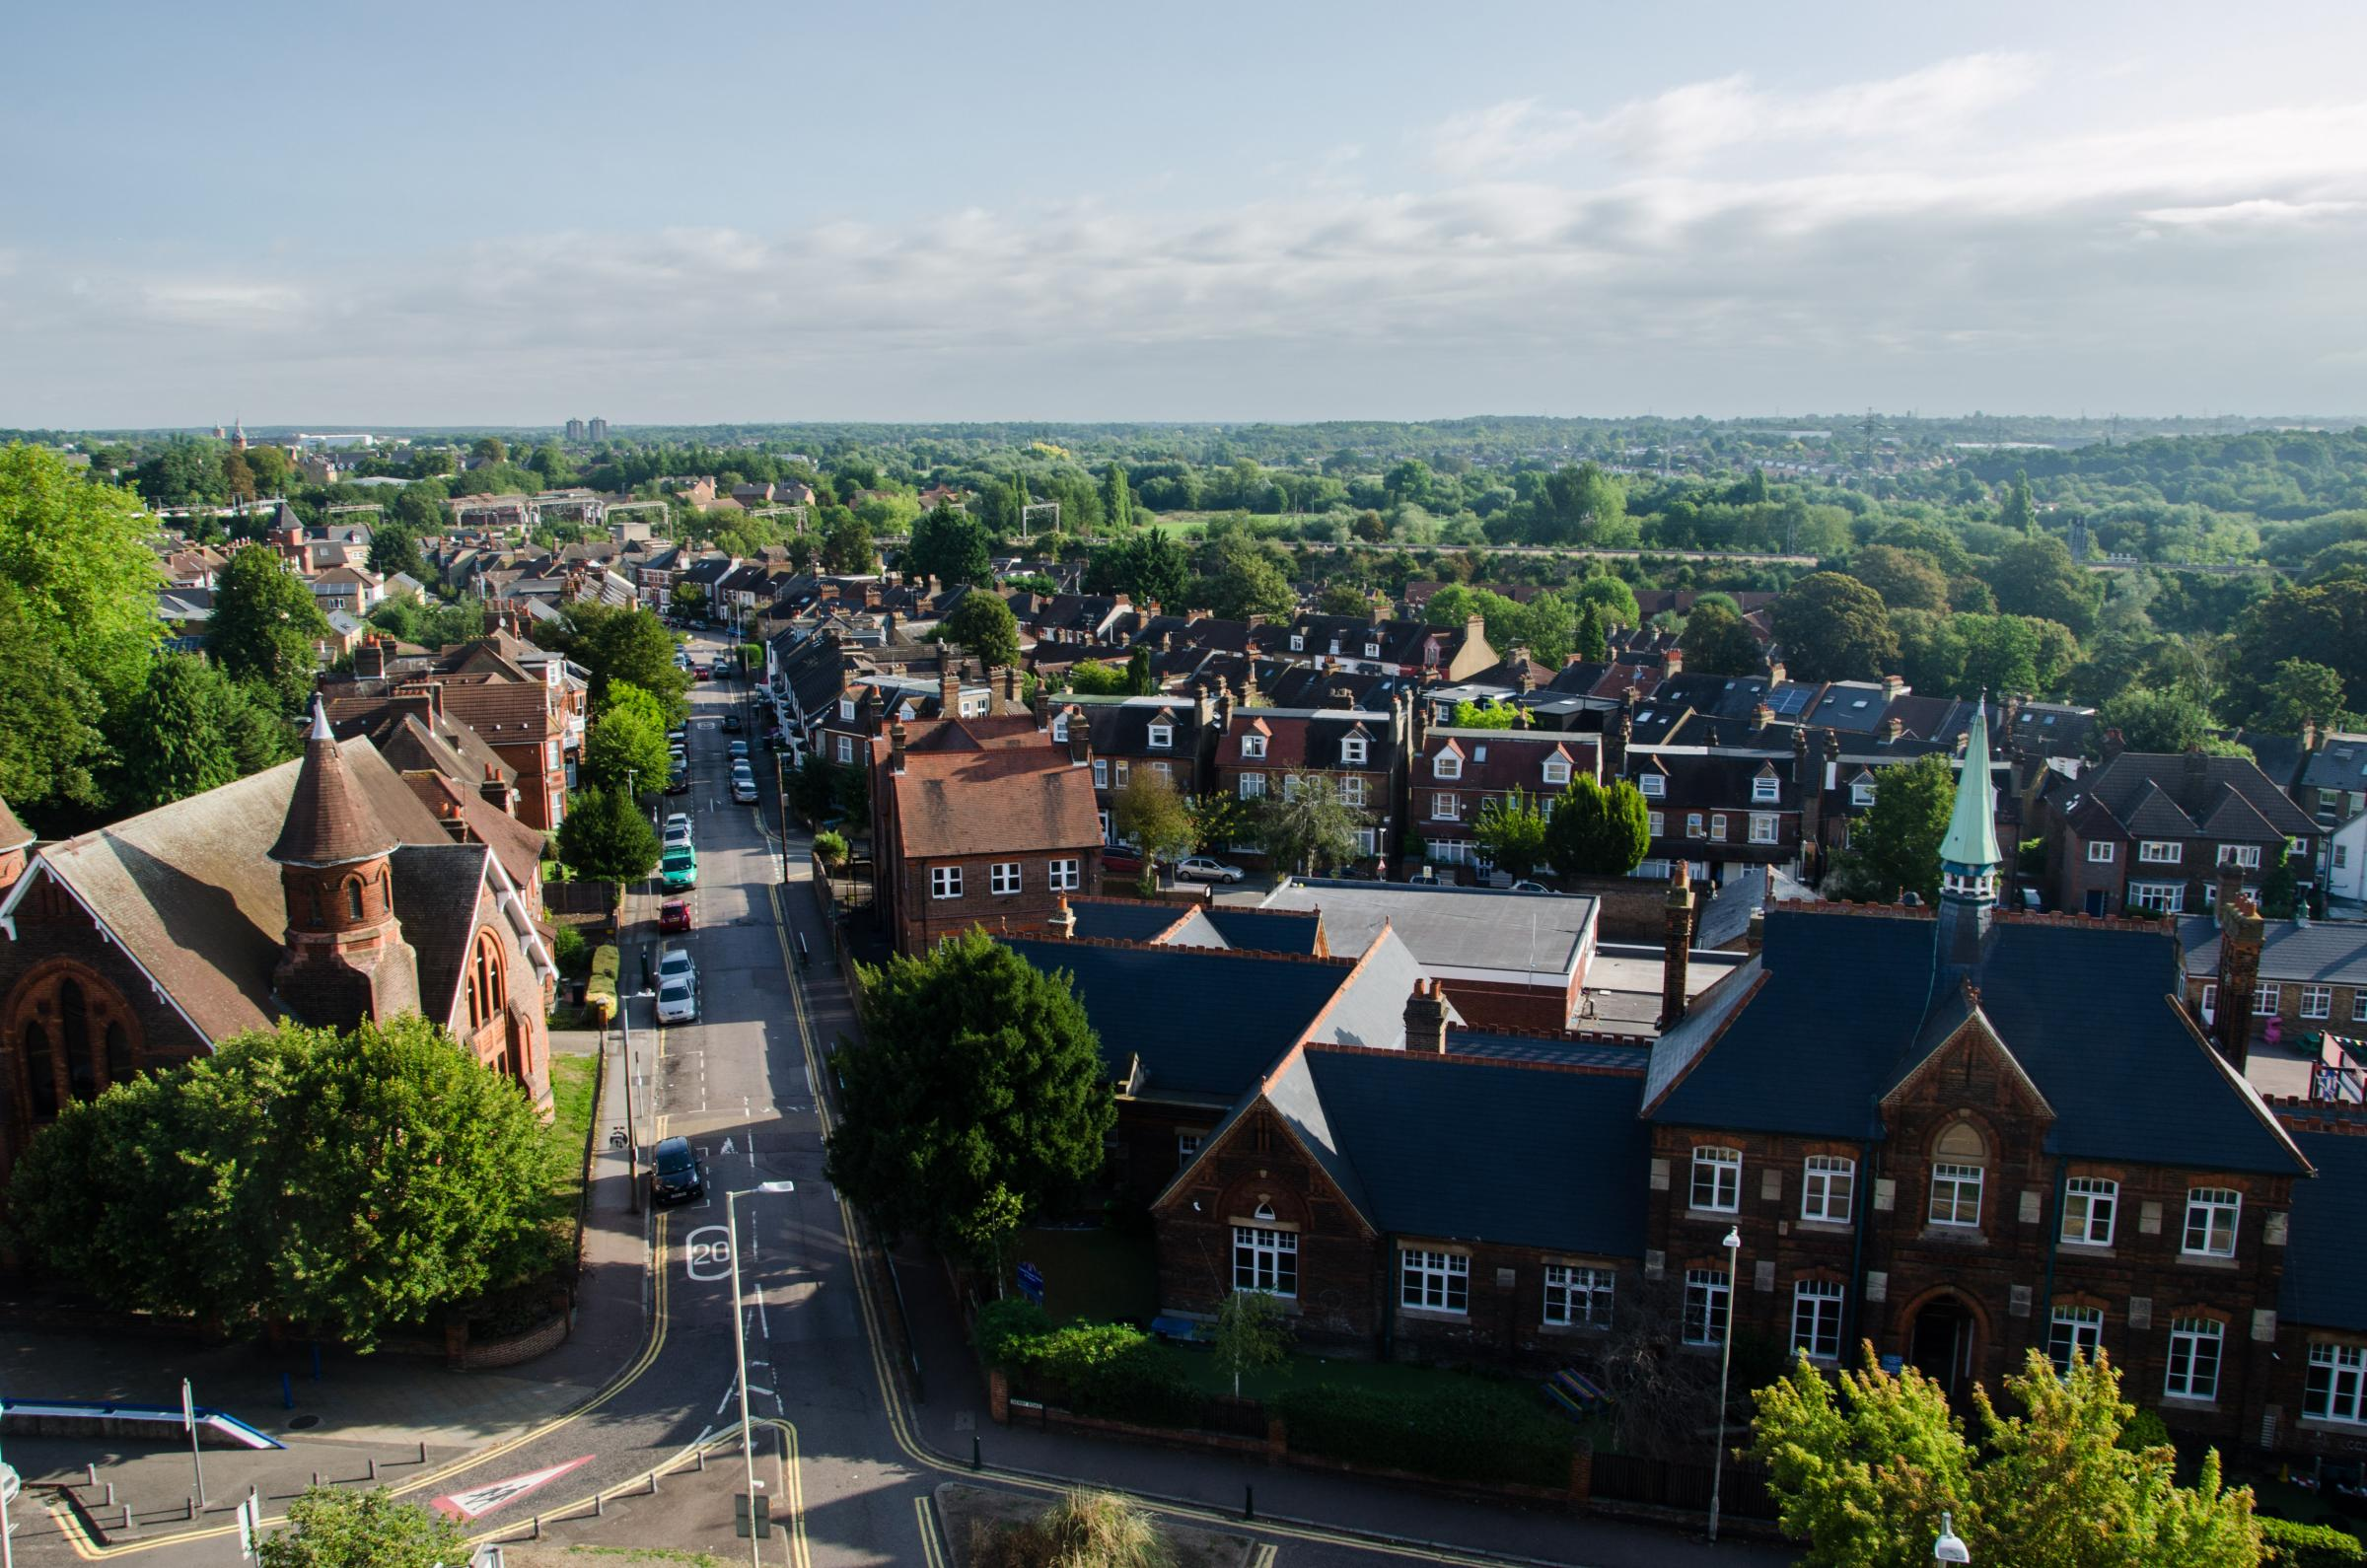 Have your say on Watford's local plan